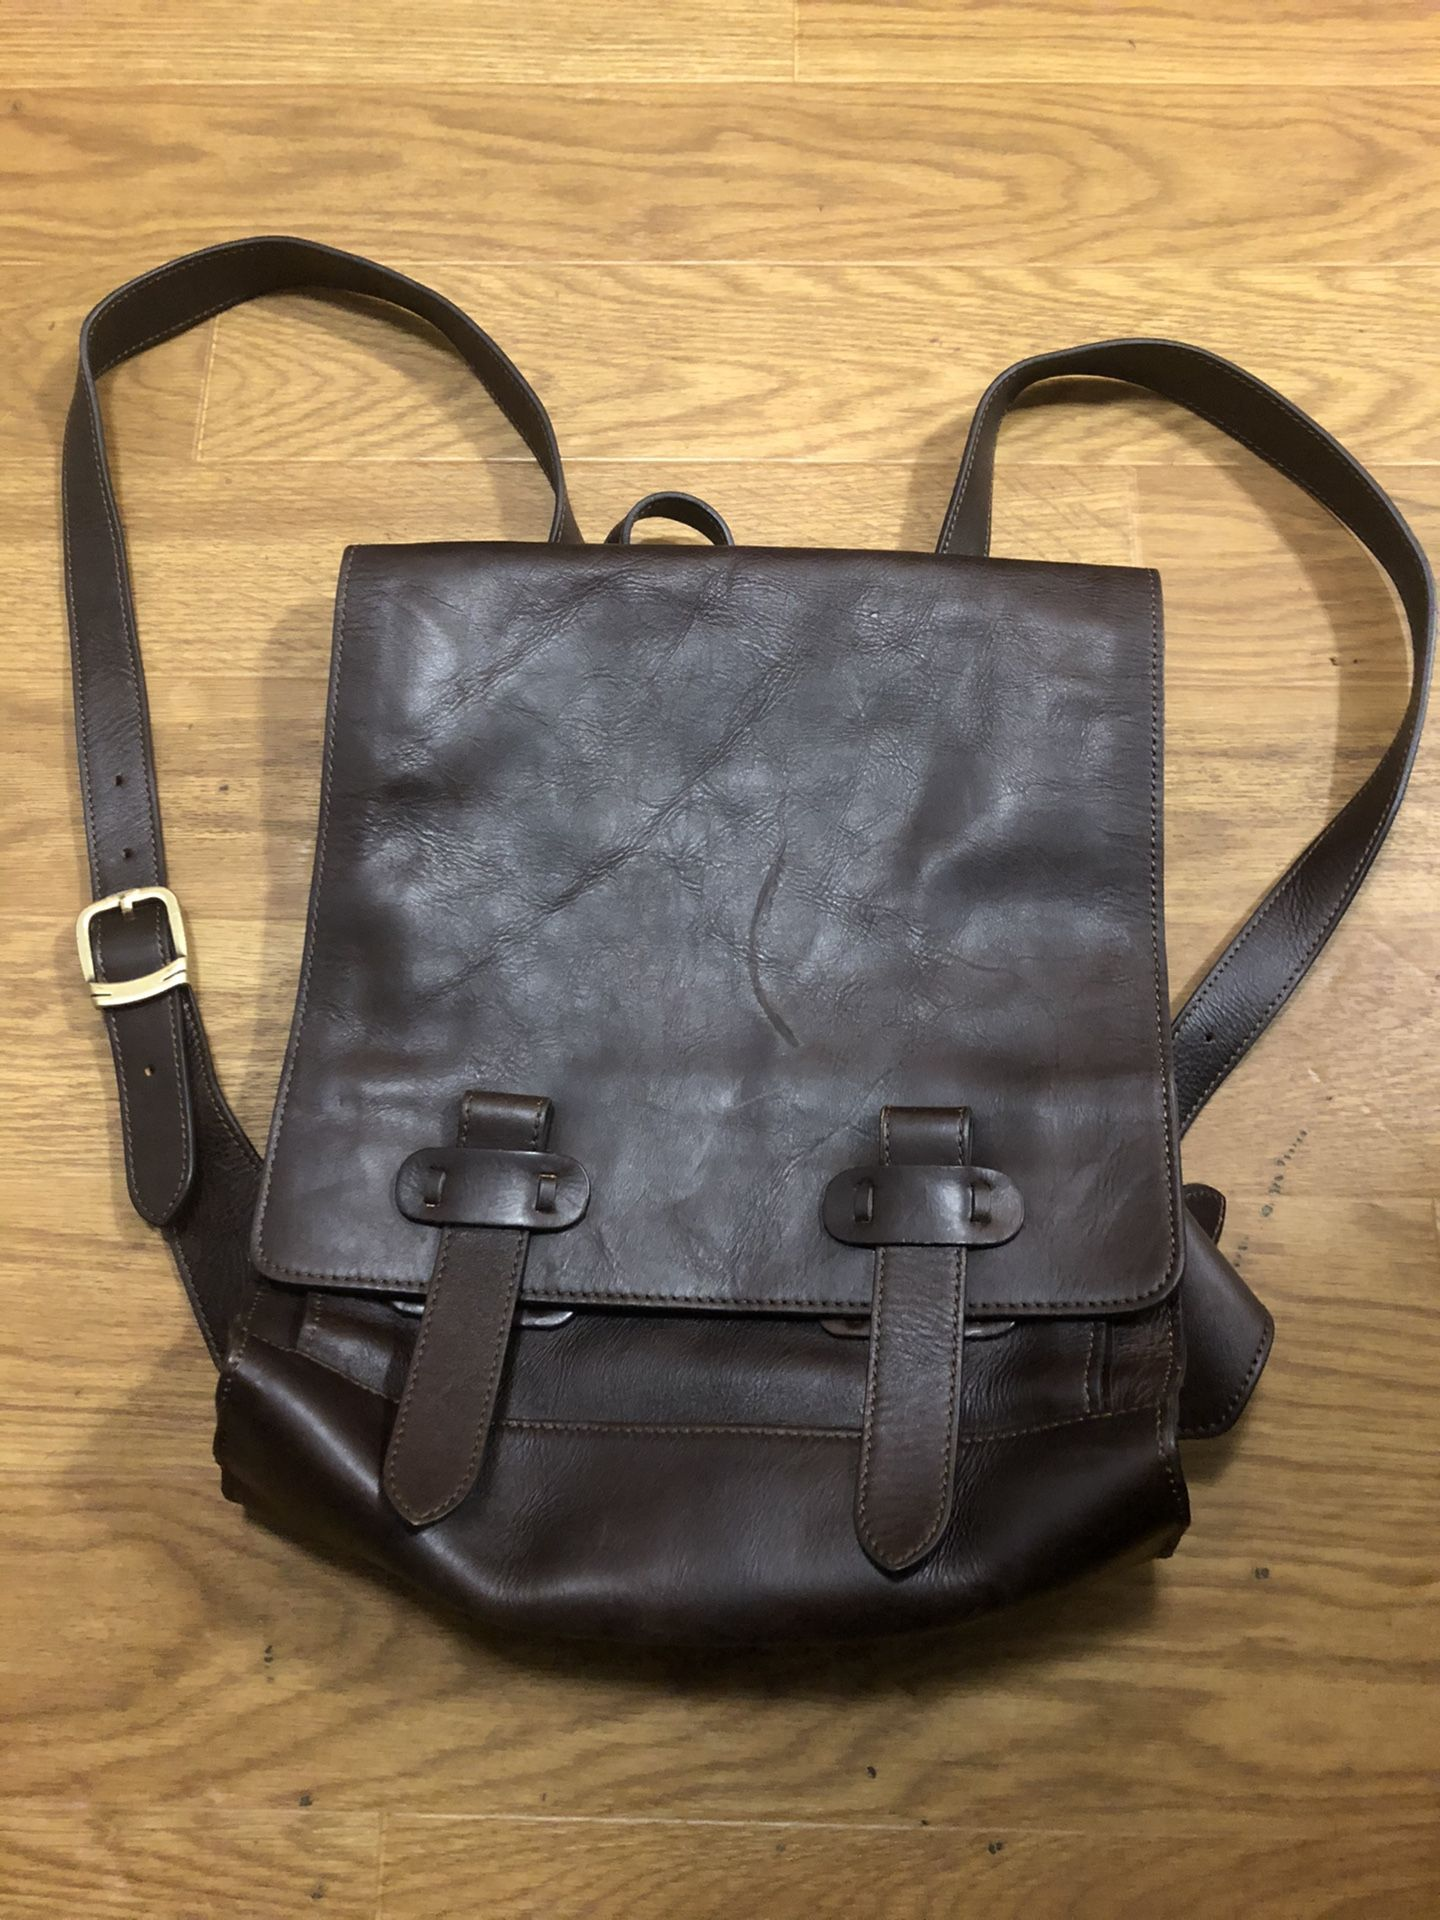 The old angler genuine leather backpack